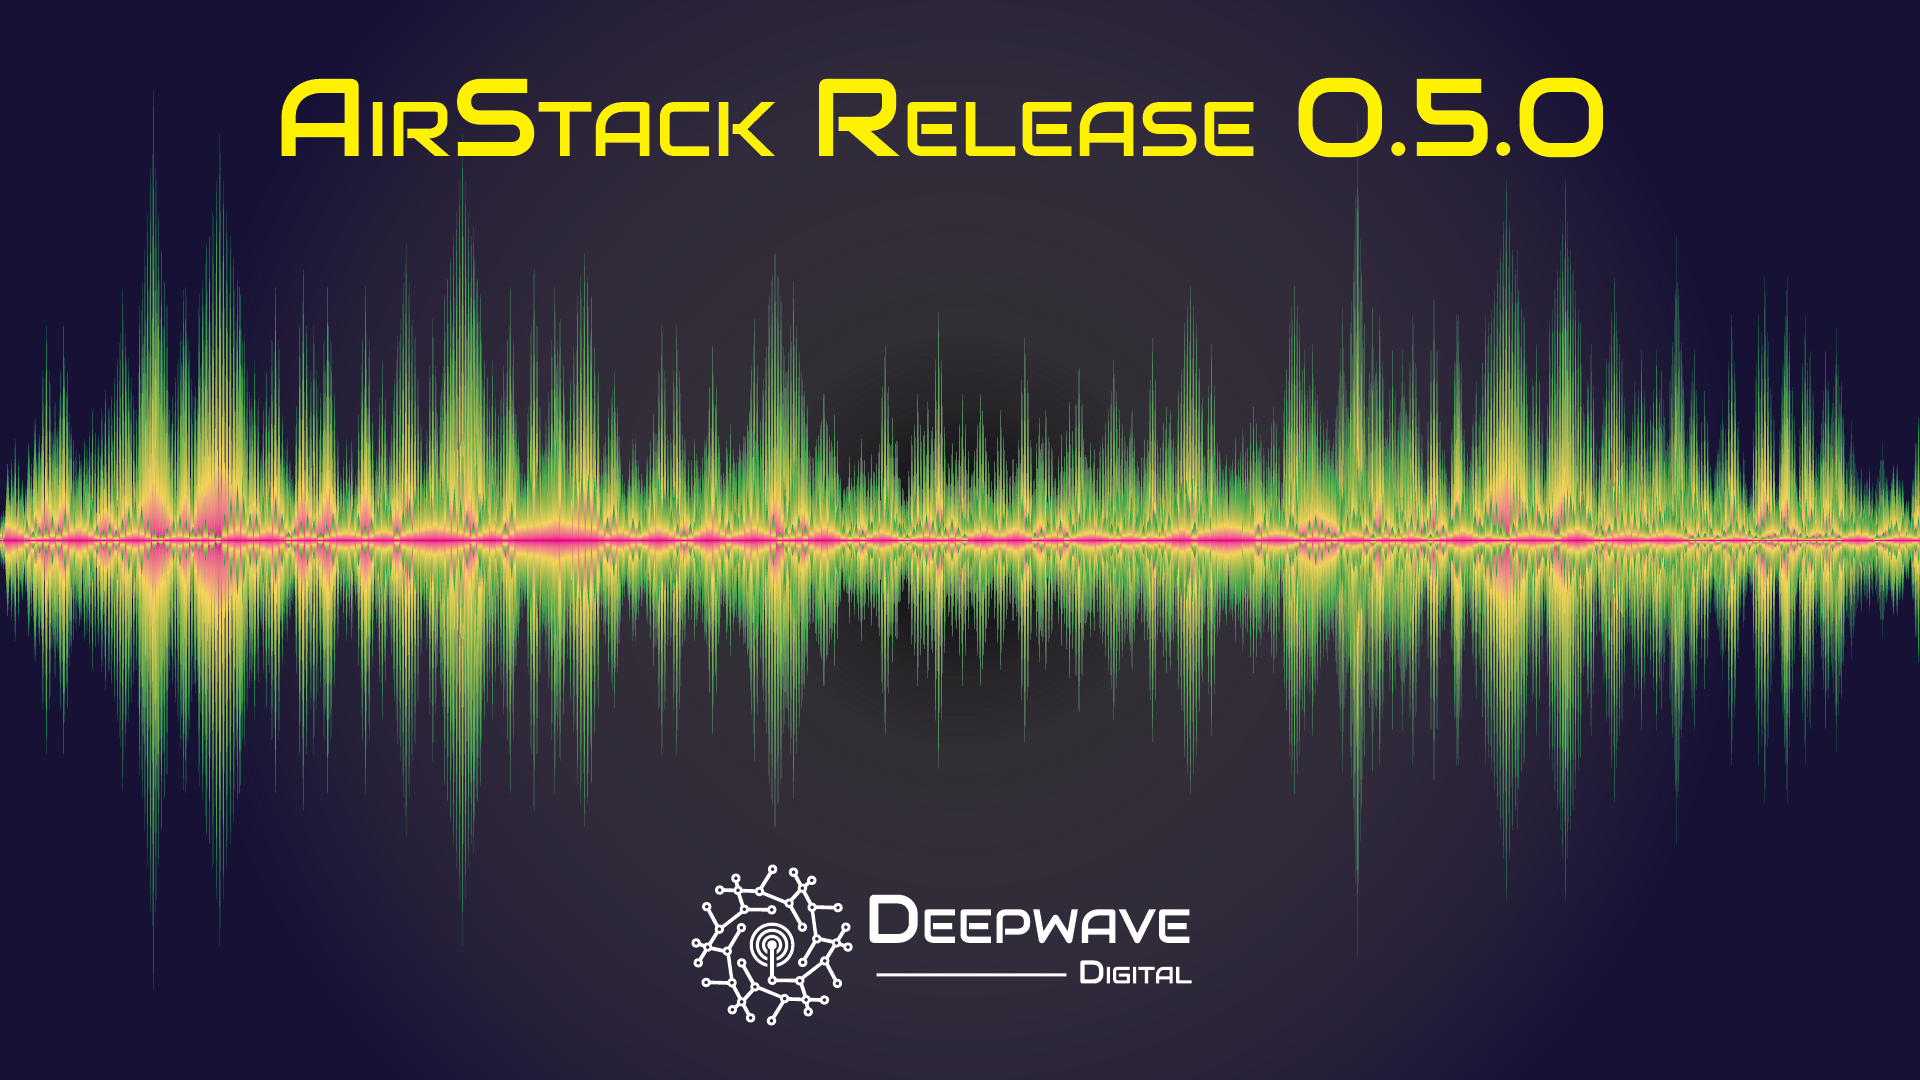 New AirStack 0.5.0 software available